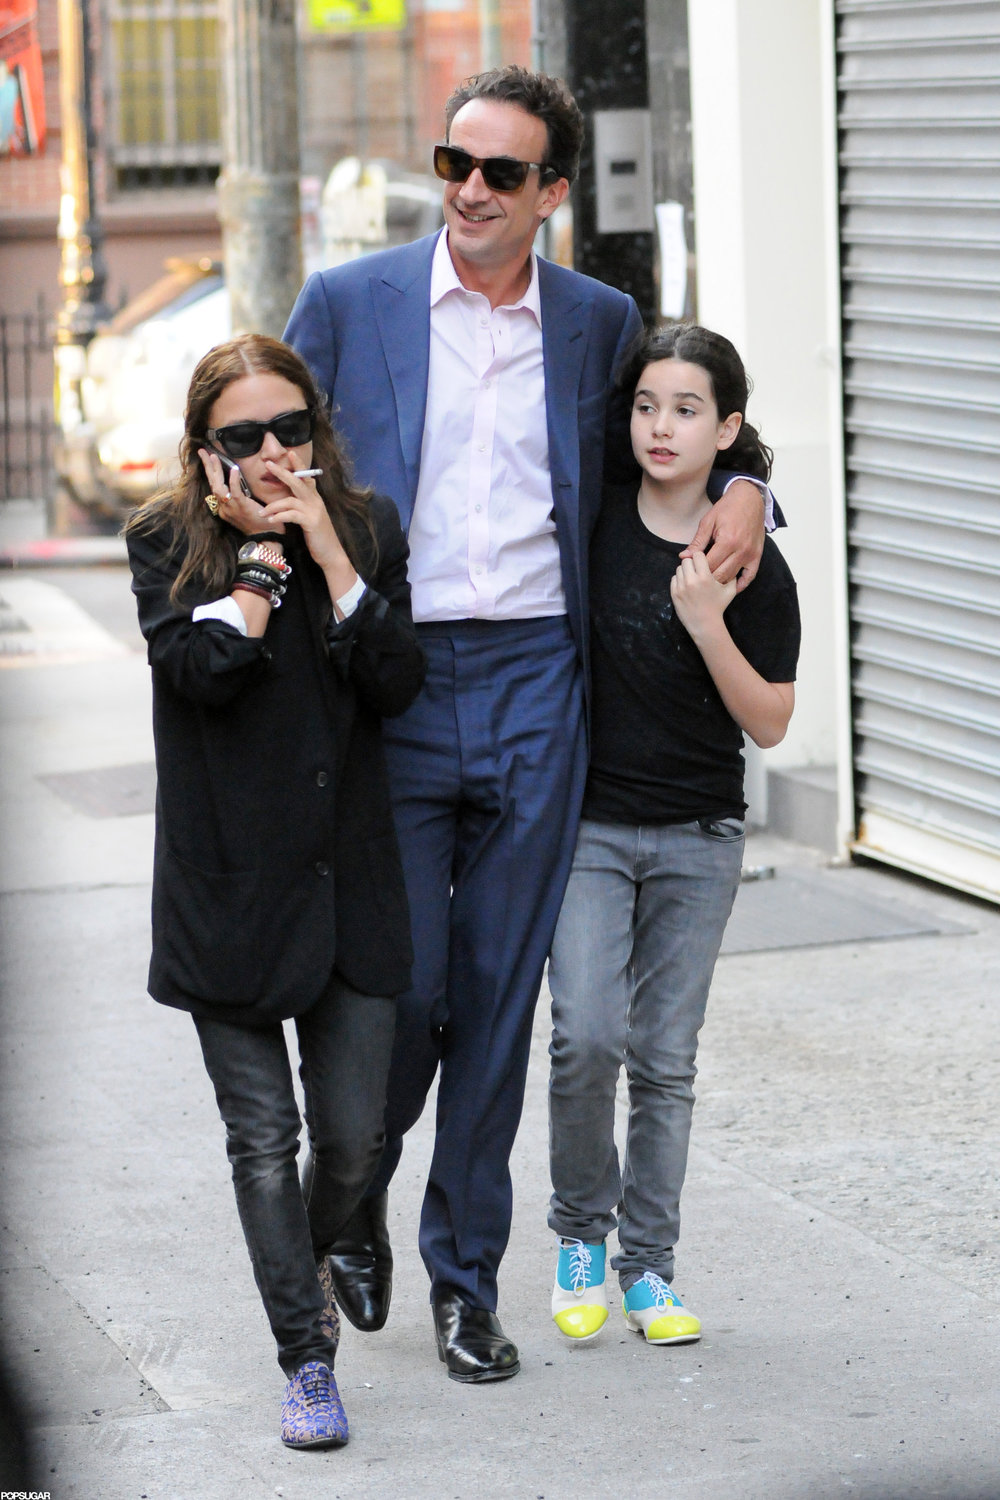 Mary-Kate-Olsen-hung-out-boyfriend-Olivier-Sarkozy-NYC.jpg